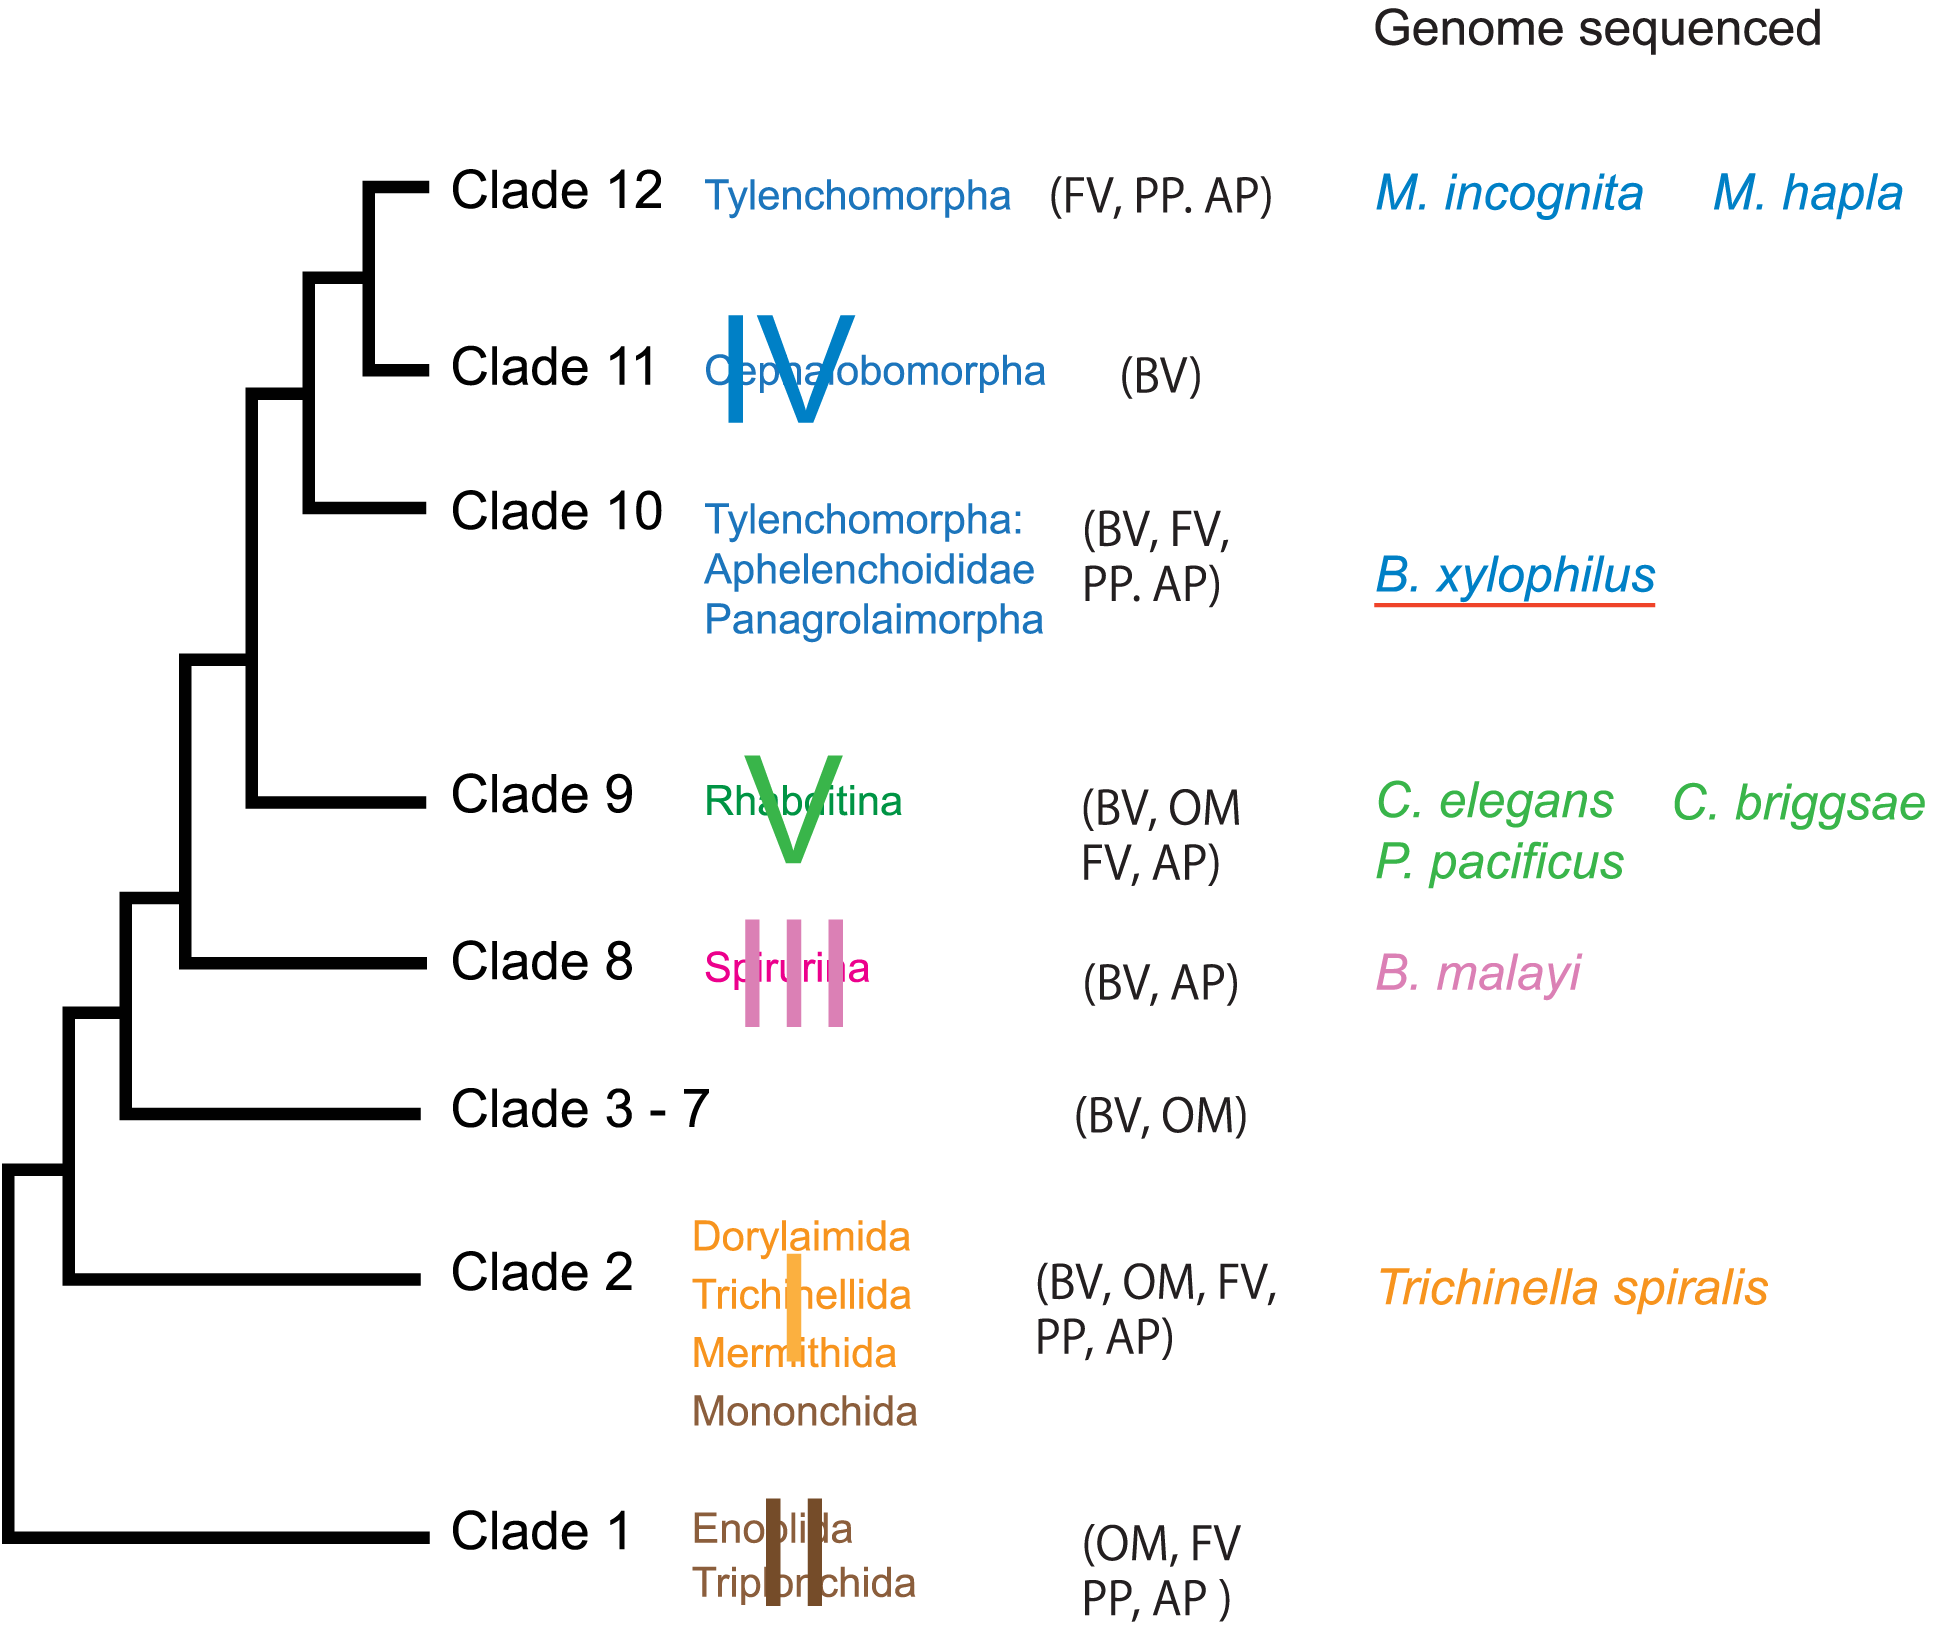 Major taxonomic groups of the phylum Nematoda and species whose genomes sequenced.